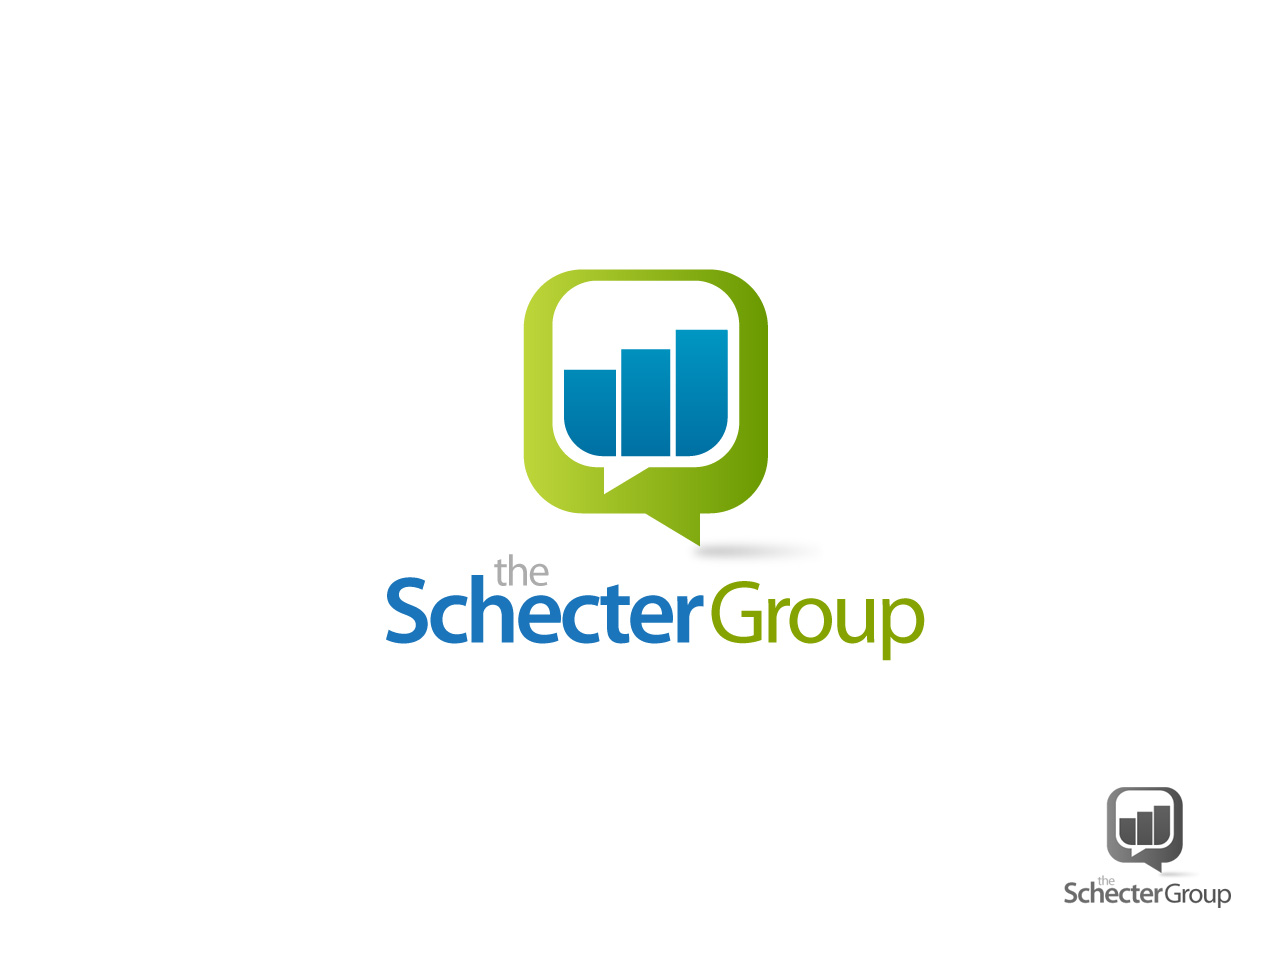 Logo Design by jpbituin - Entry No. 93 in the Logo Design Contest Inspiring Logo Design for The Schecter Group.